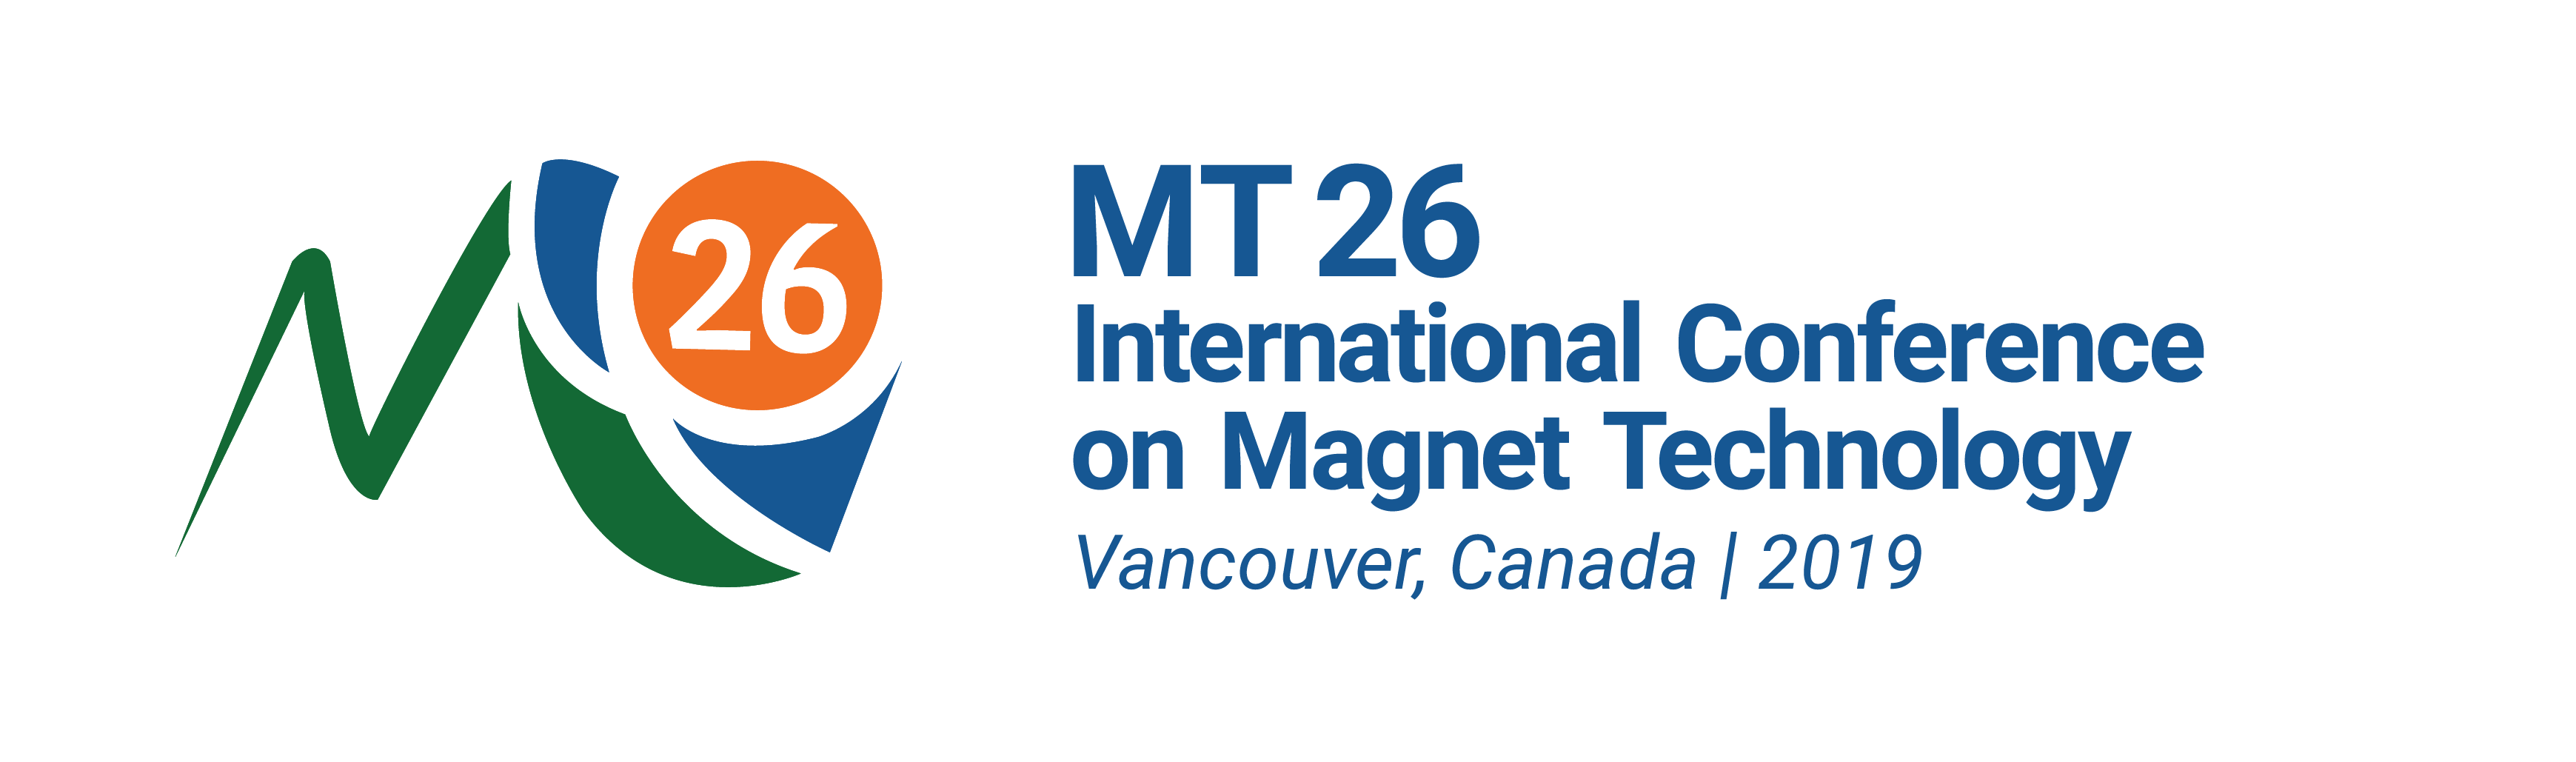 MT26 - International Conference on Magnet Technology